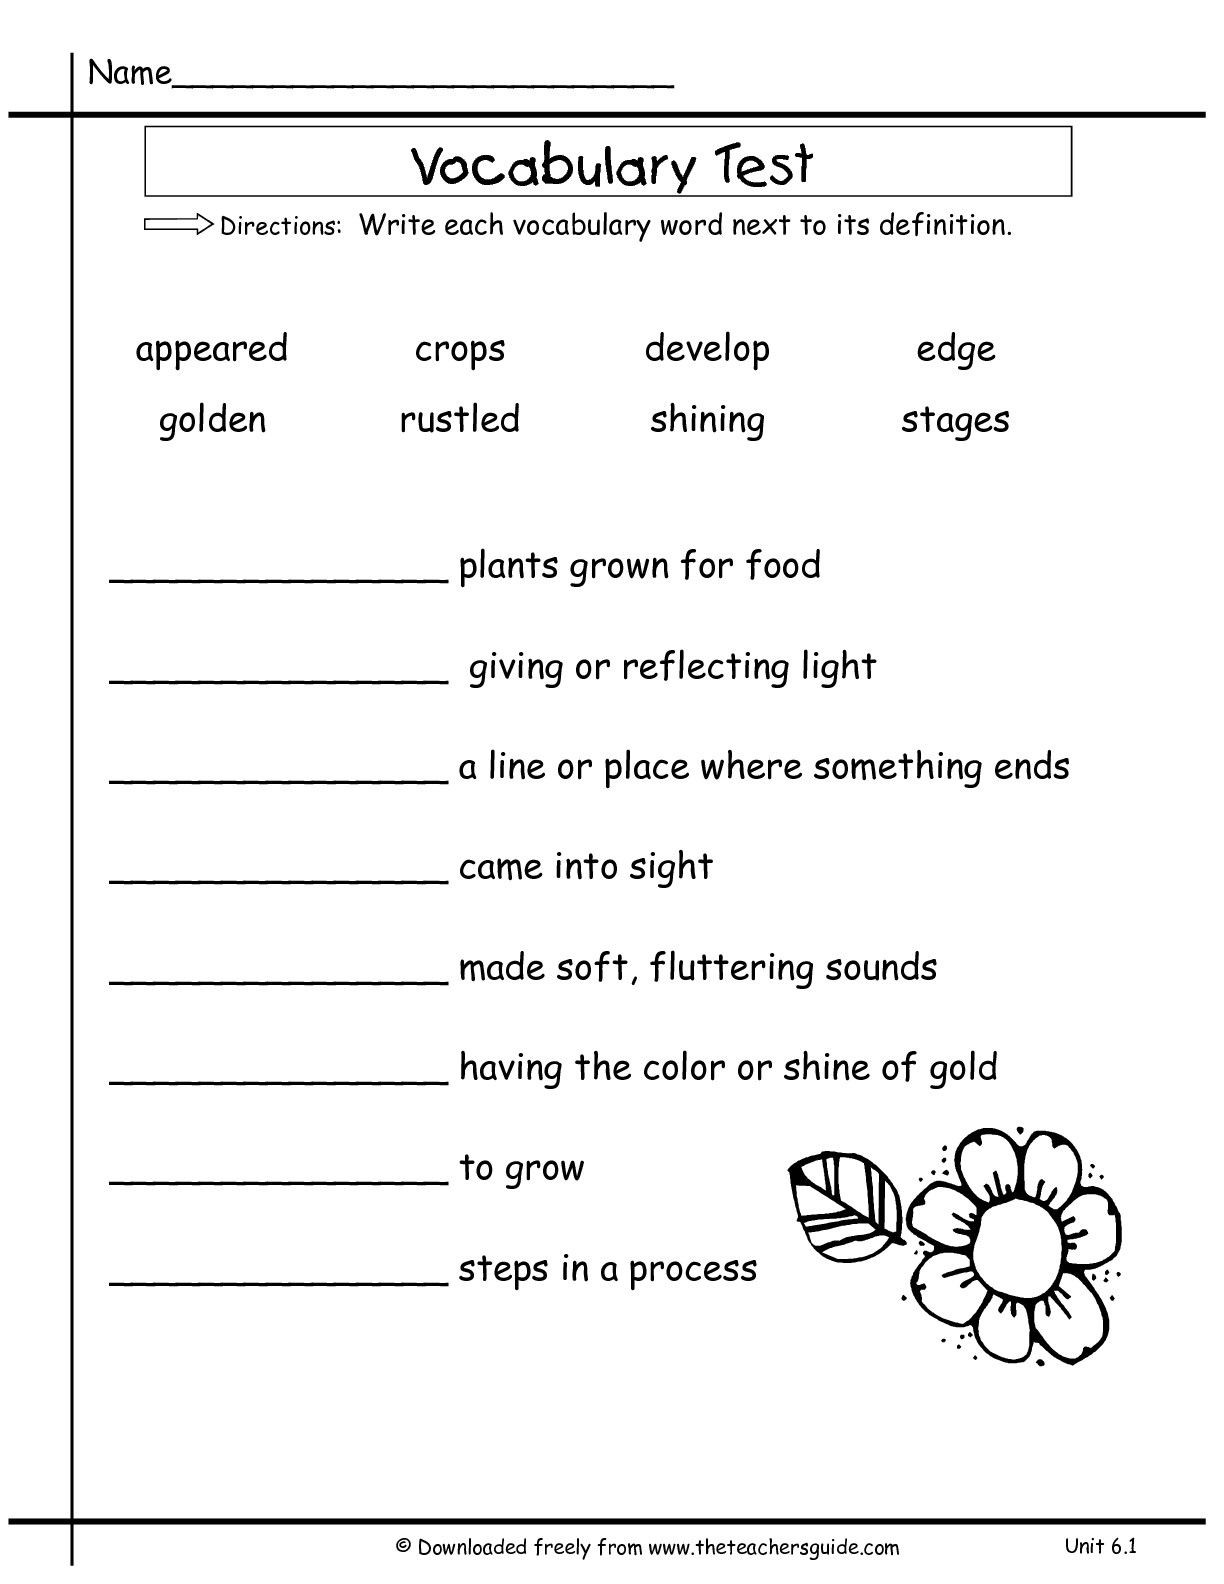 30 7th Grade Health Worksheets